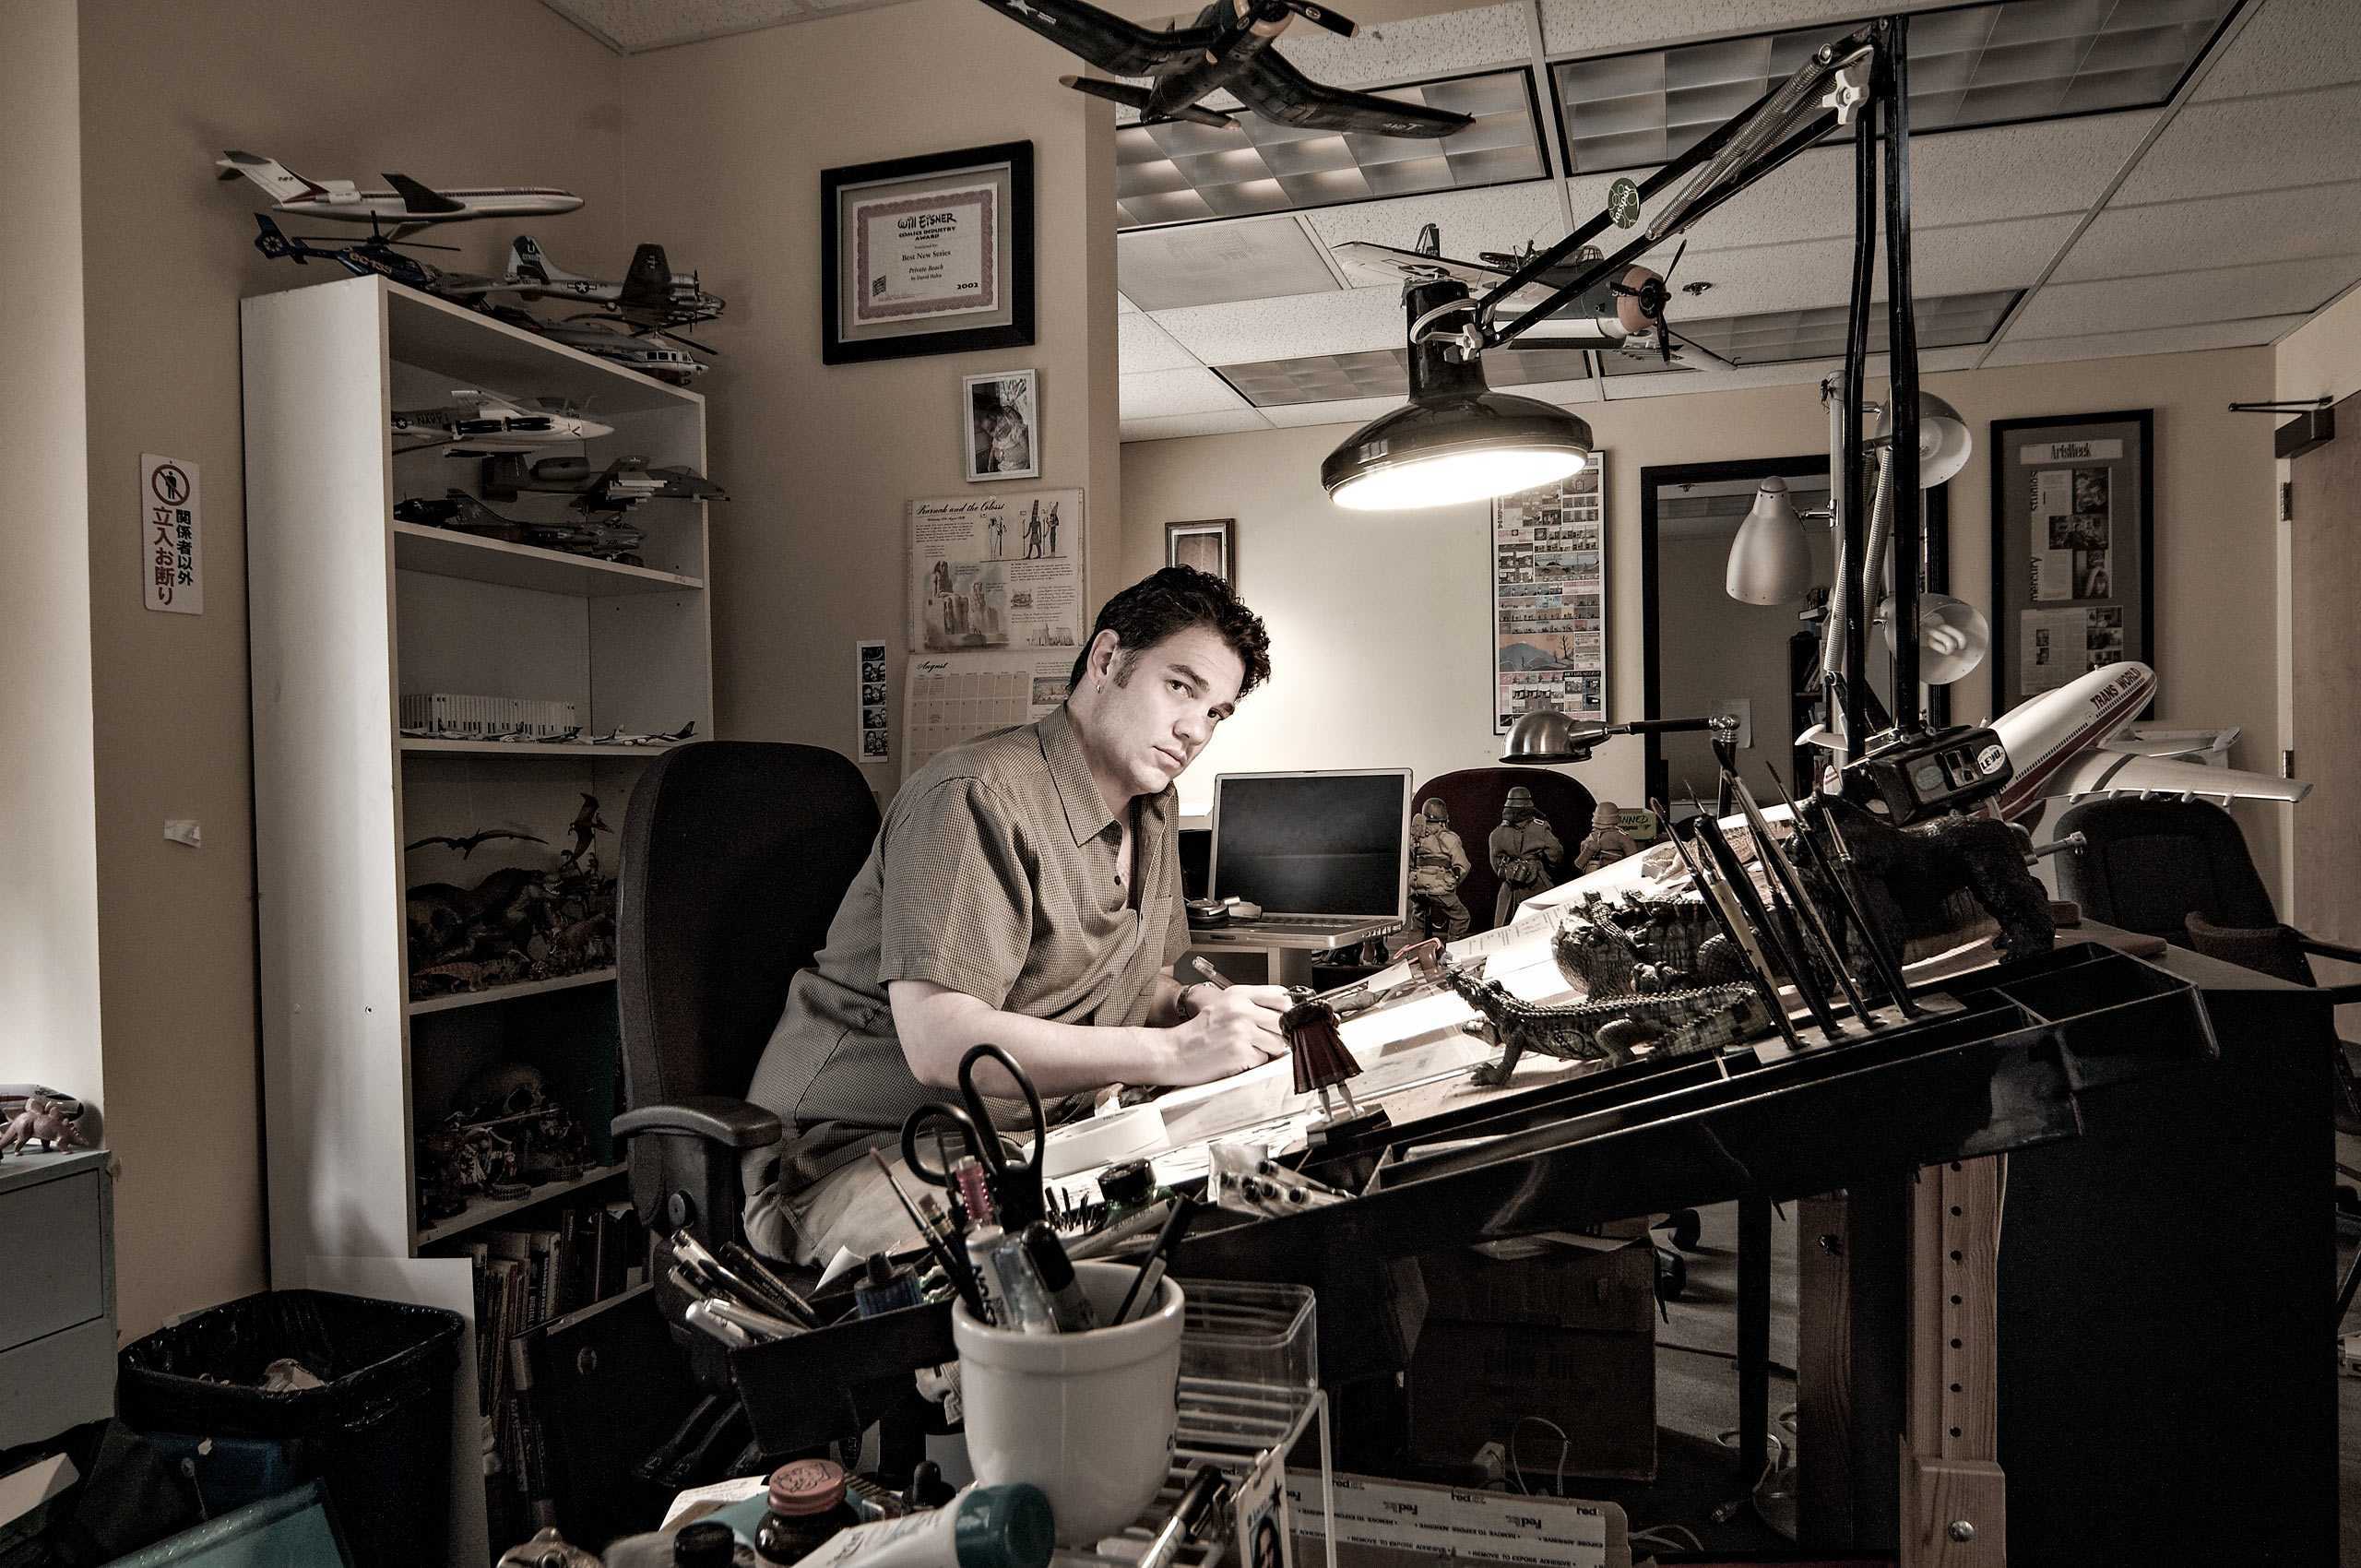 Comic Book Artist David Hahn, photographed in his studio